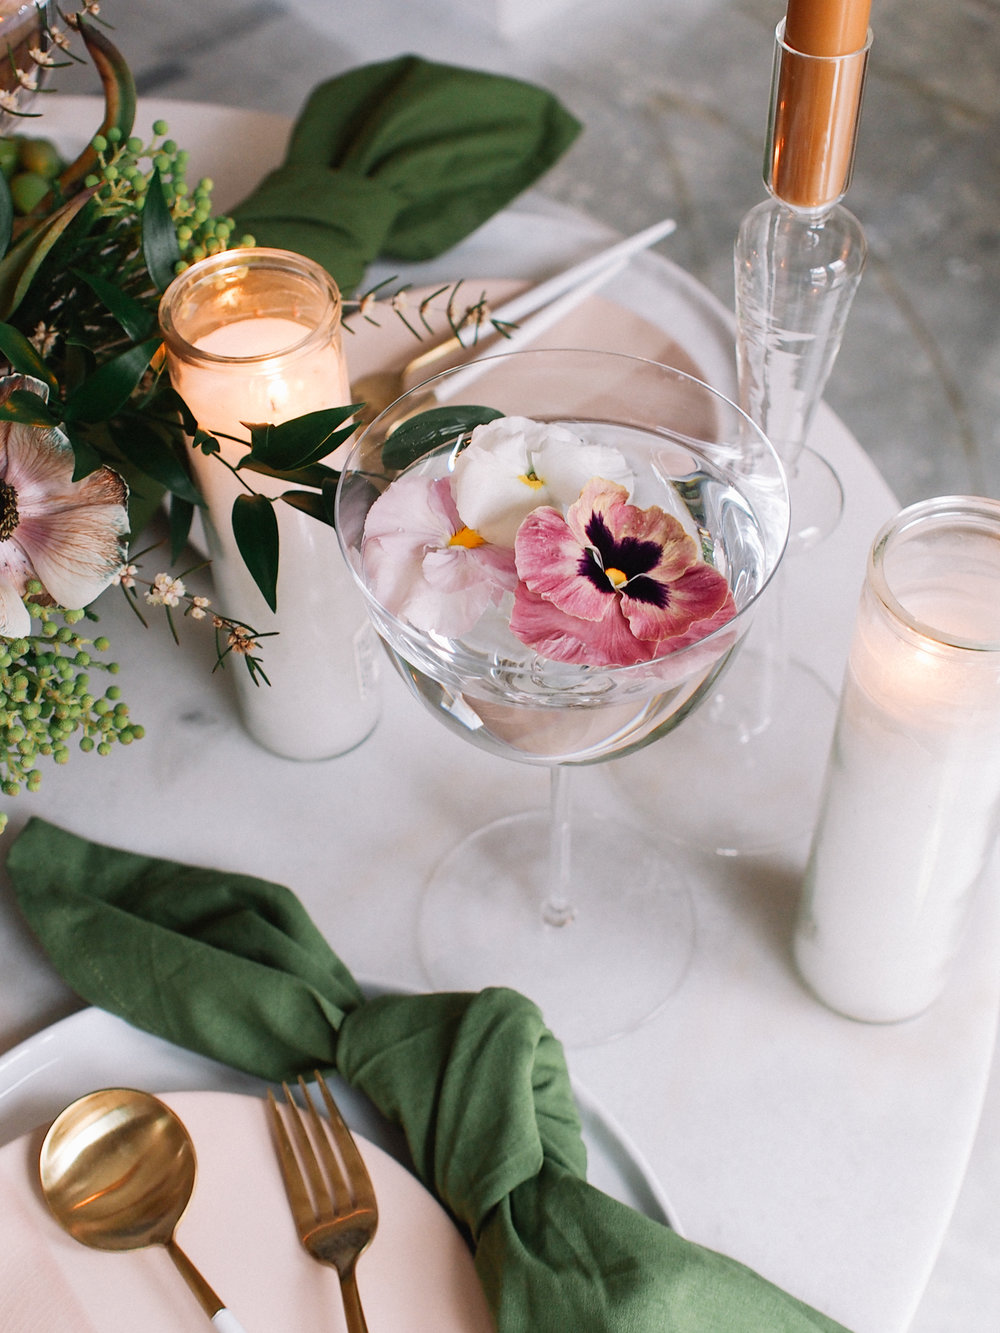 Accessorize a spring tabletop | A Fabulous Fete